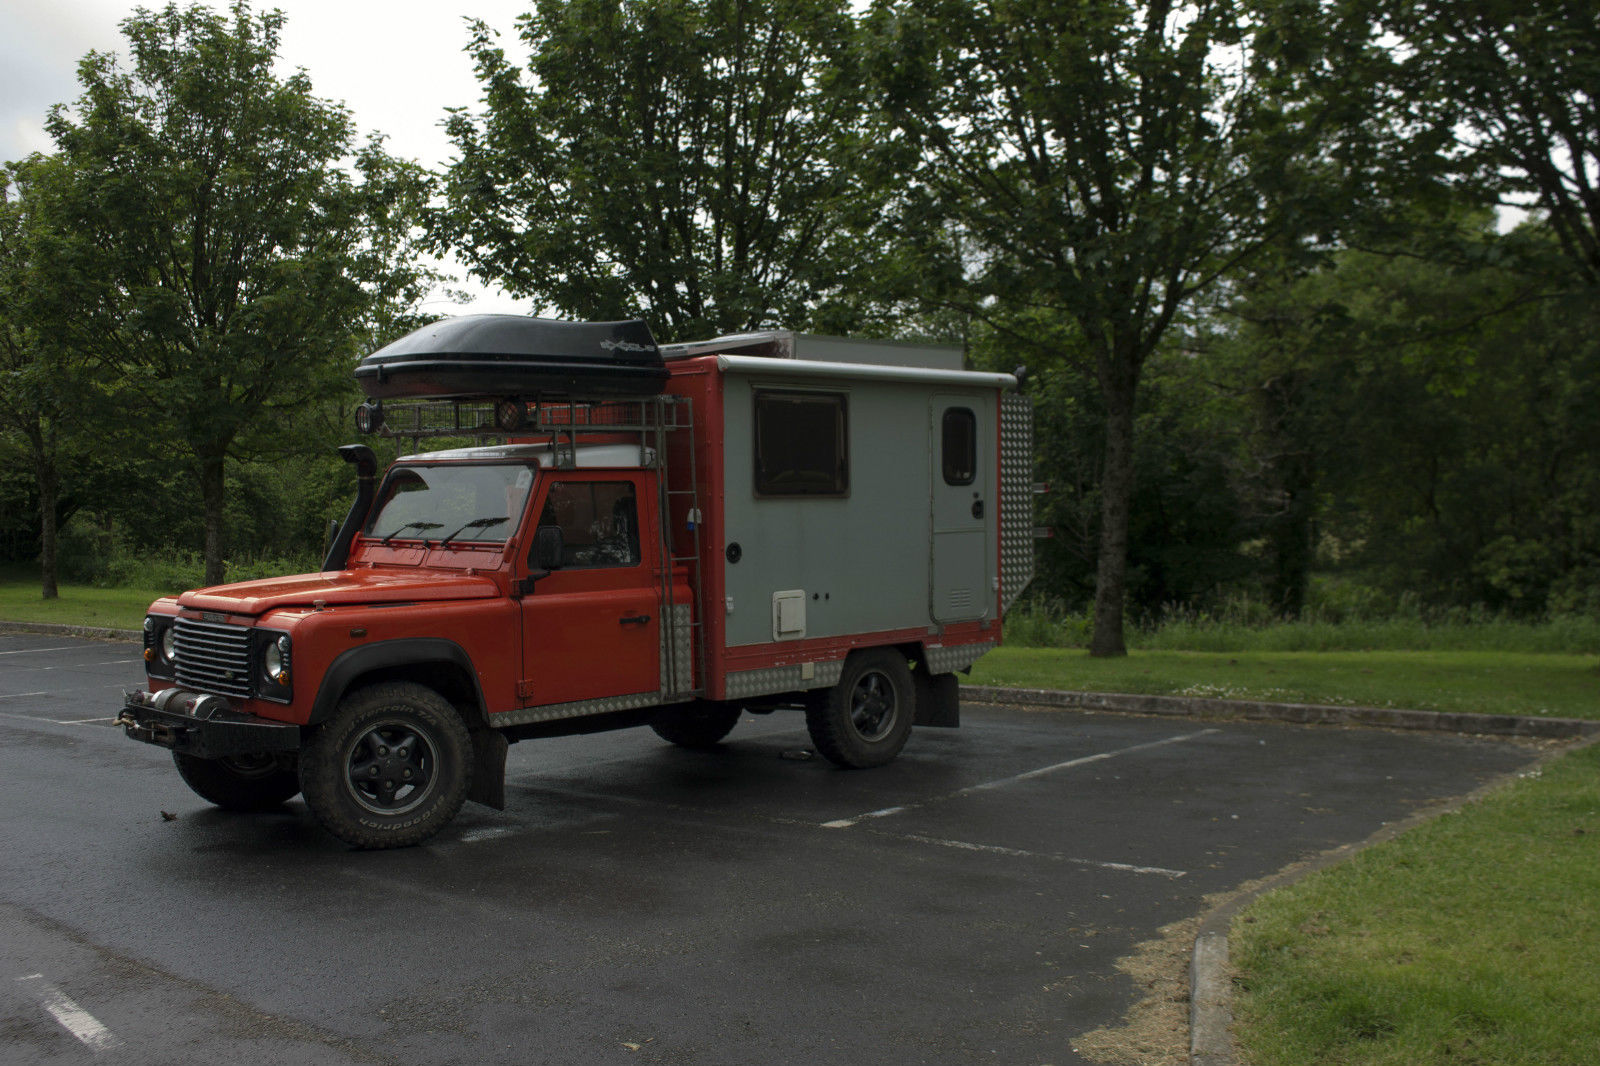 SOLD – Land rover defender 130 camper 4×4 motorhome – UK